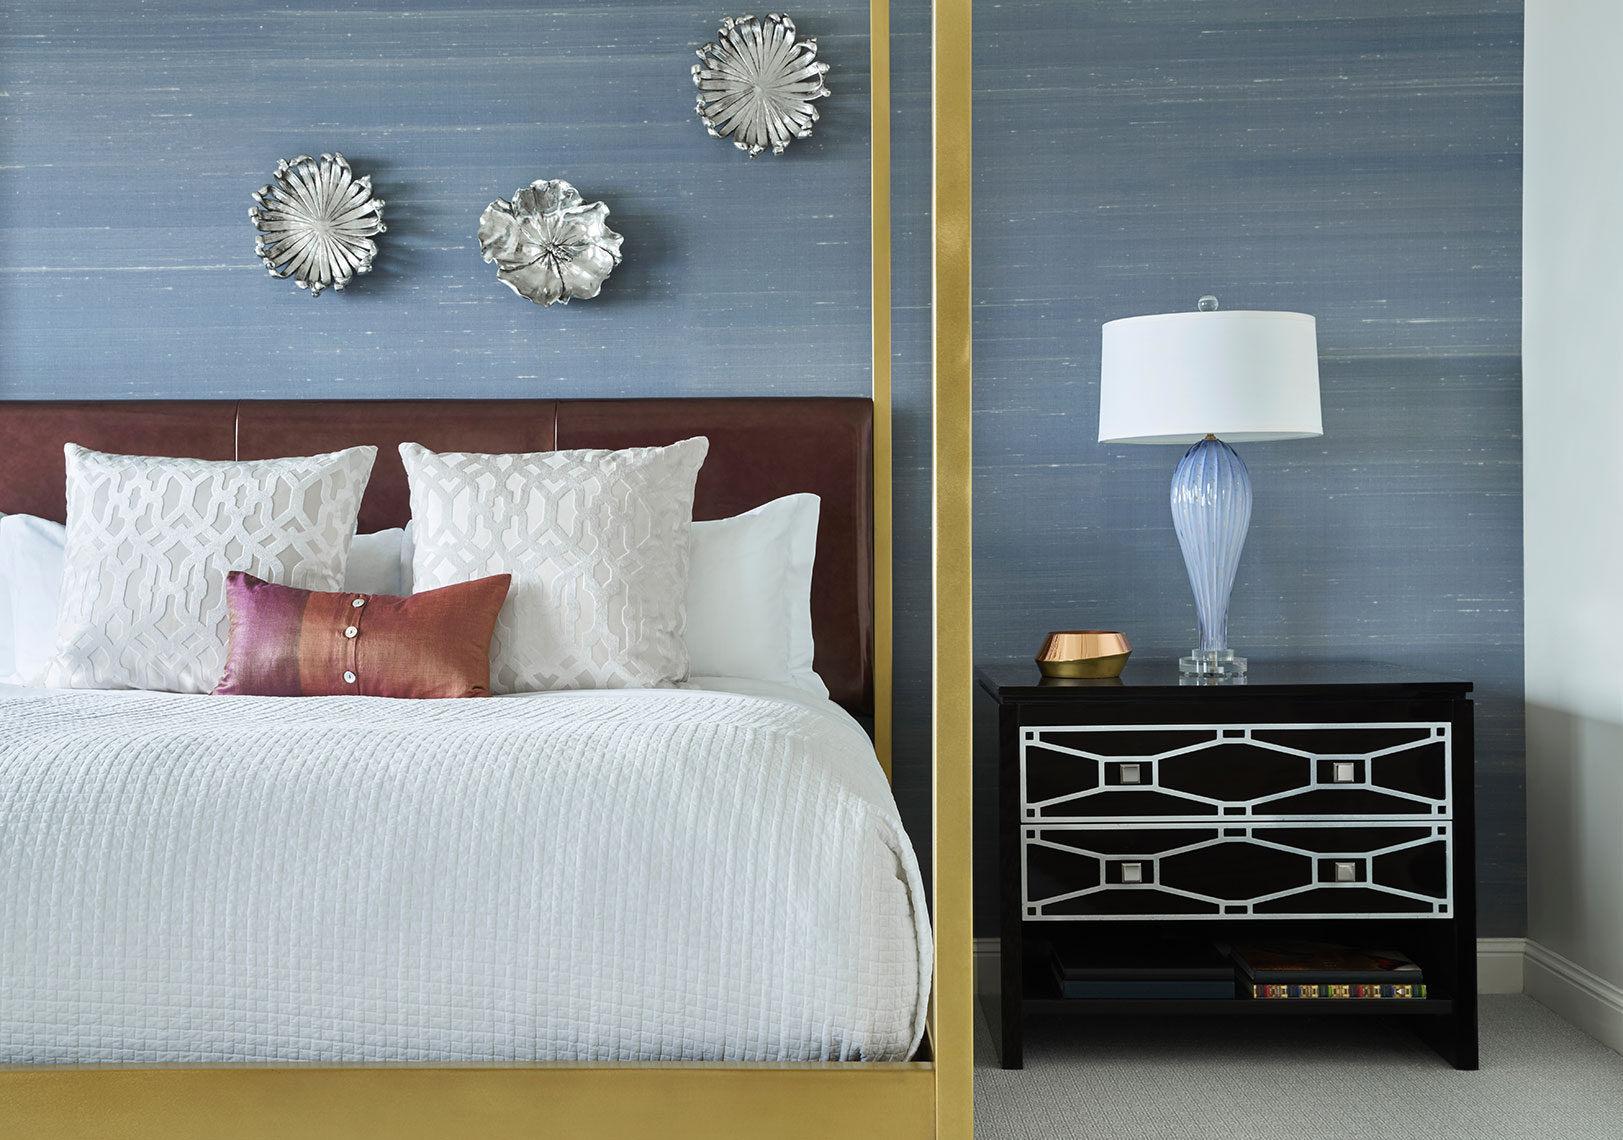 The-Ritz-Carlton-Tysons-Jr-Suite-Bed-Vignette